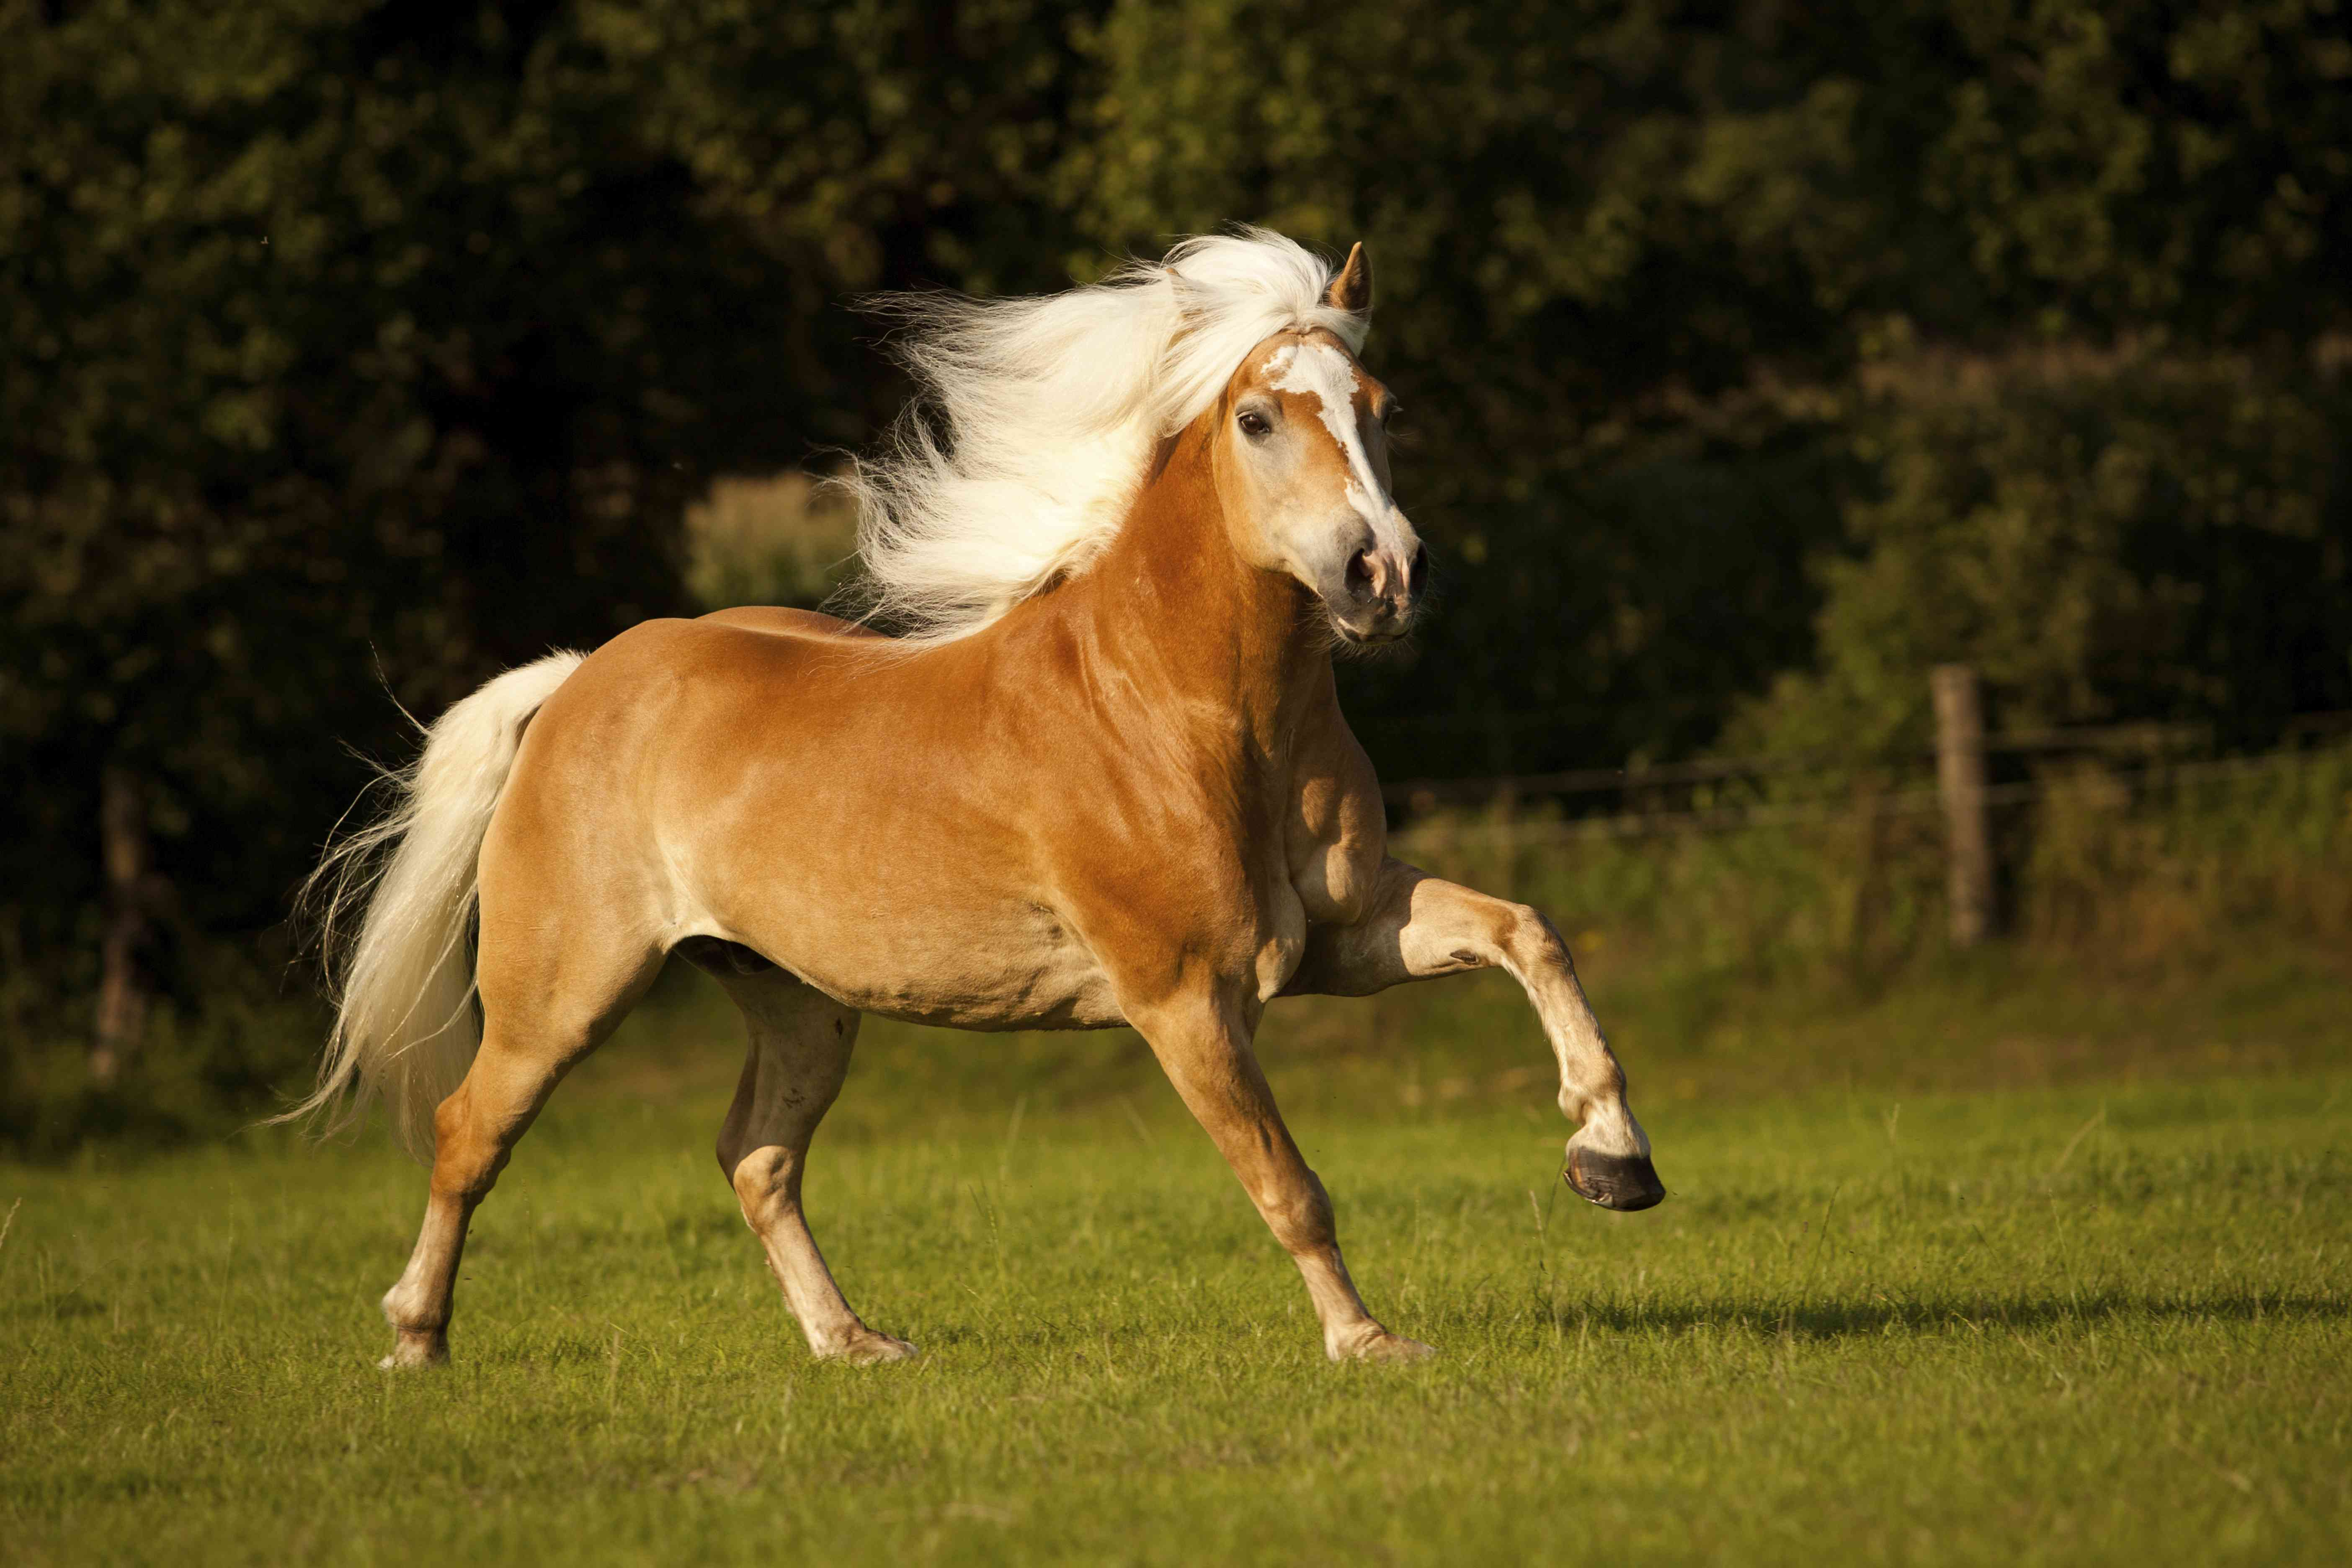 Haflinger, gelding with a long mane, galloping on a meadow